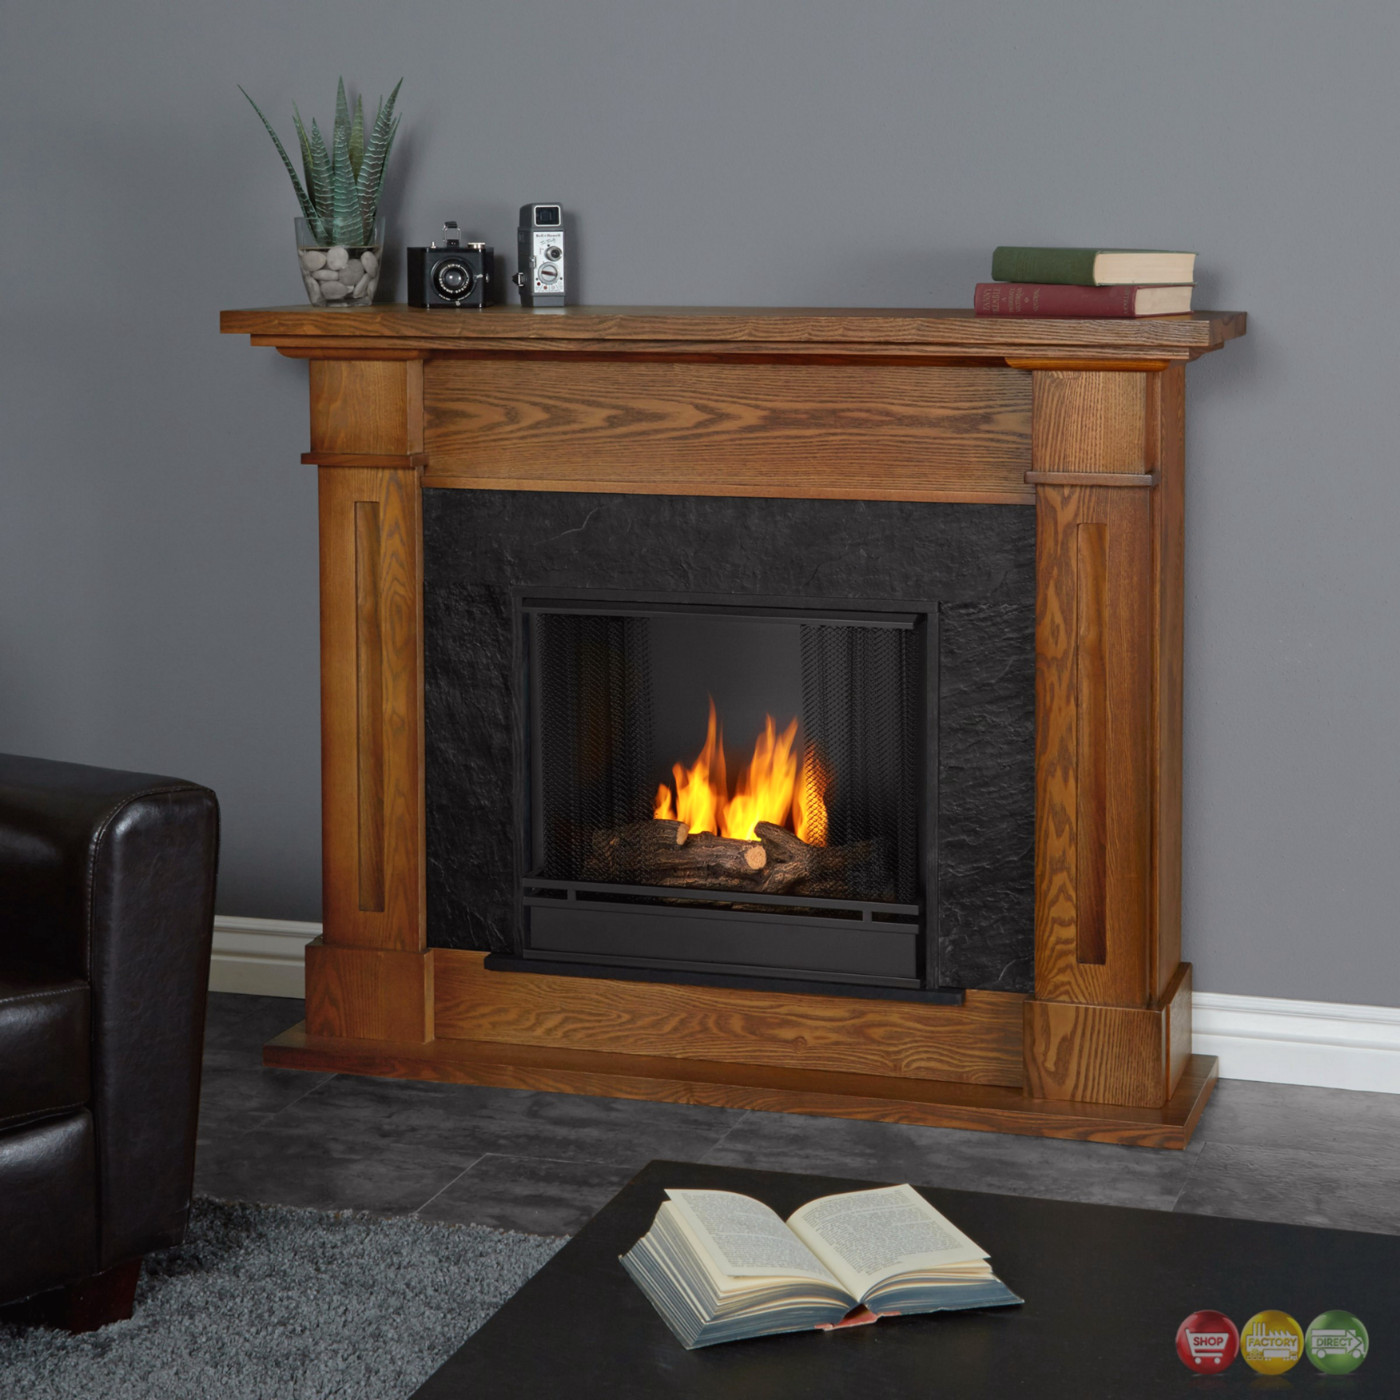 kipling ventless gel fuel fireplace in burnished oak with logs 54x42. Black Bedroom Furniture Sets. Home Design Ideas